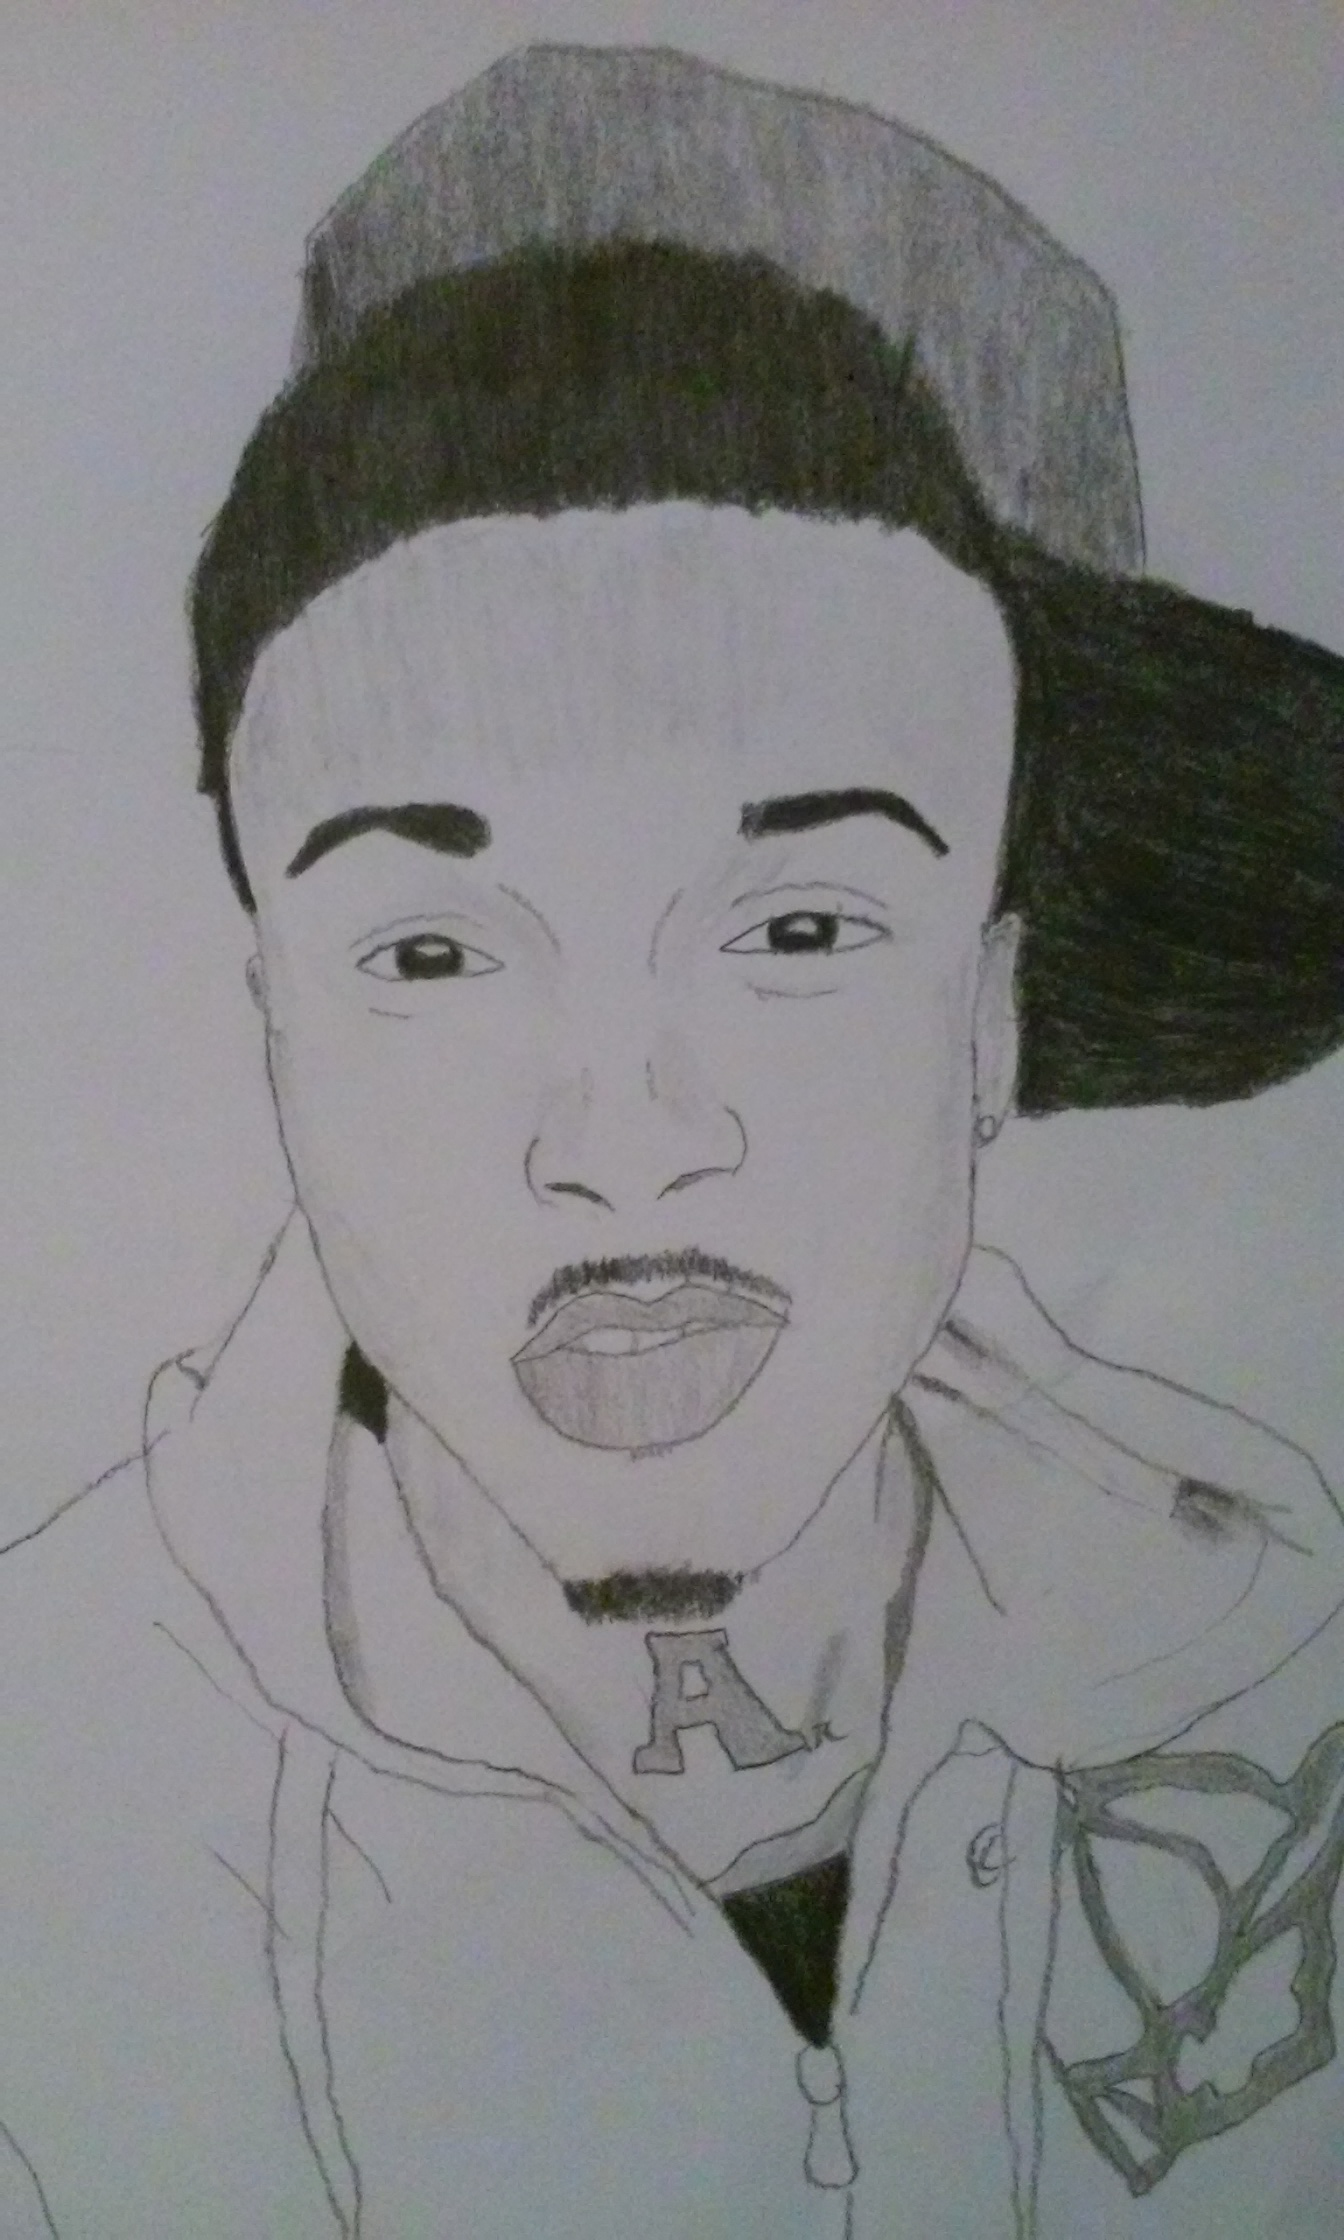 Drawn pice august alsina © Alsina Drawing Drawing gregory312